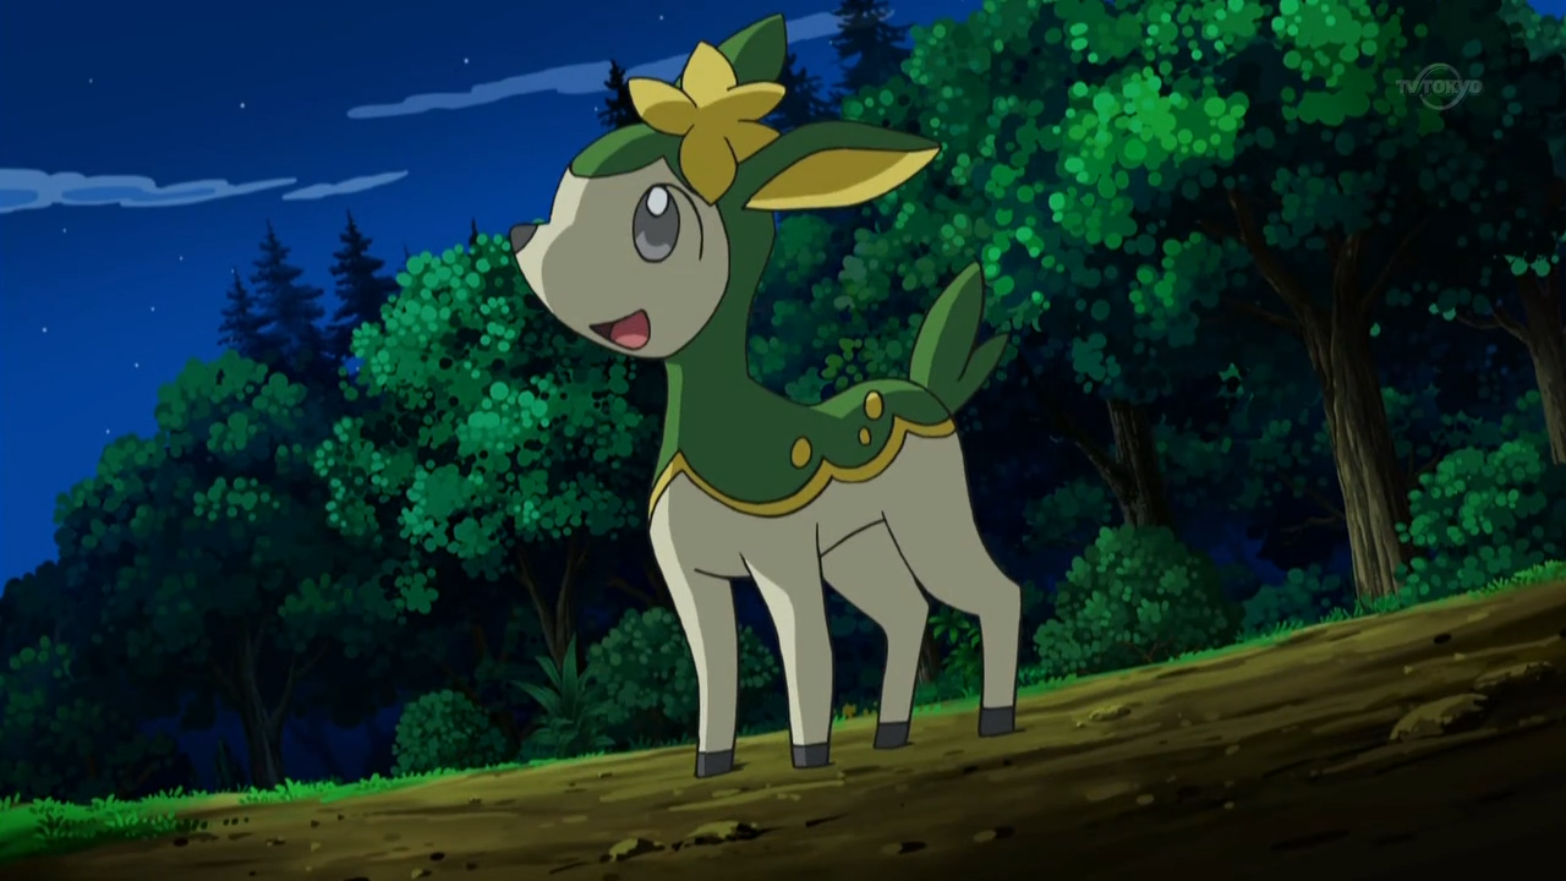 Katharine's Deerling used Aromatherapy to make a wild Garbodor go away.